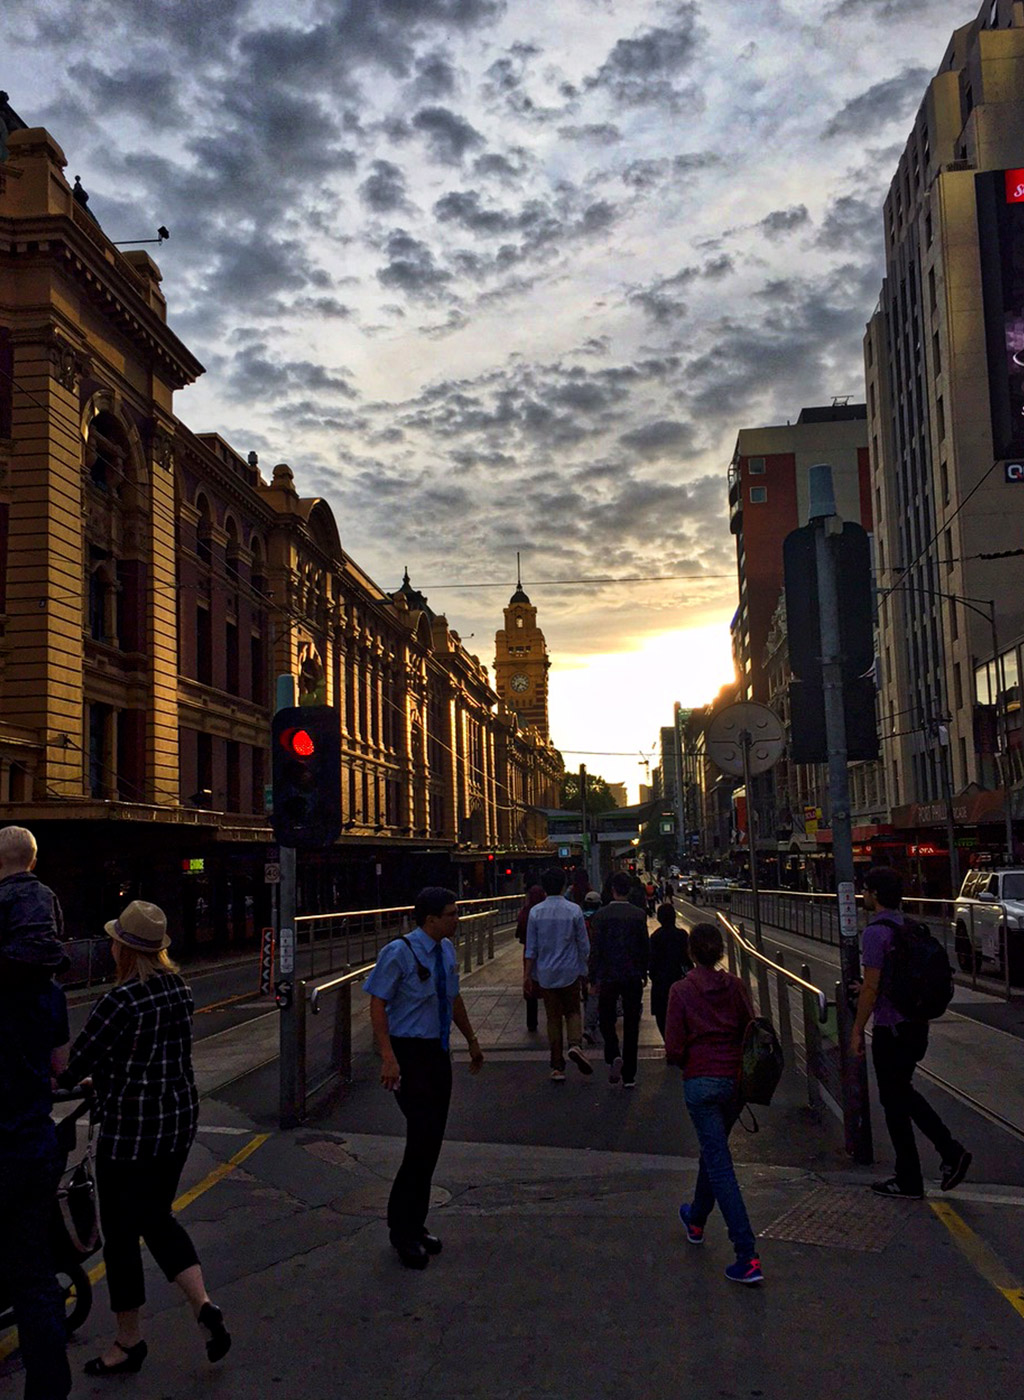 melbourne-flinders-street-station-starting-with-a-2